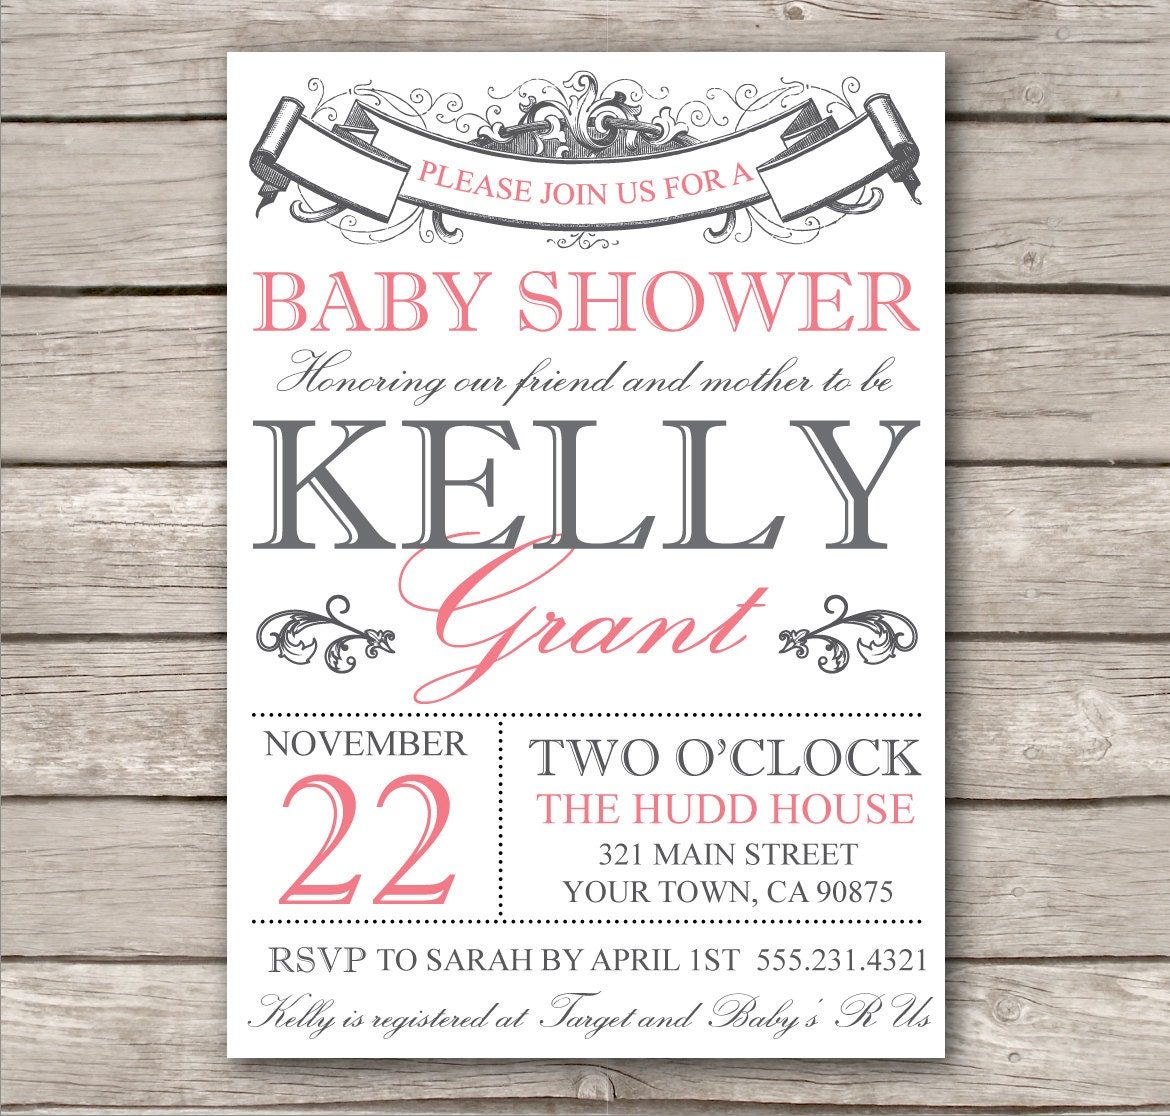 Bridal shower invitation or baby shower invitation by for Free printable baby shower invitations templates